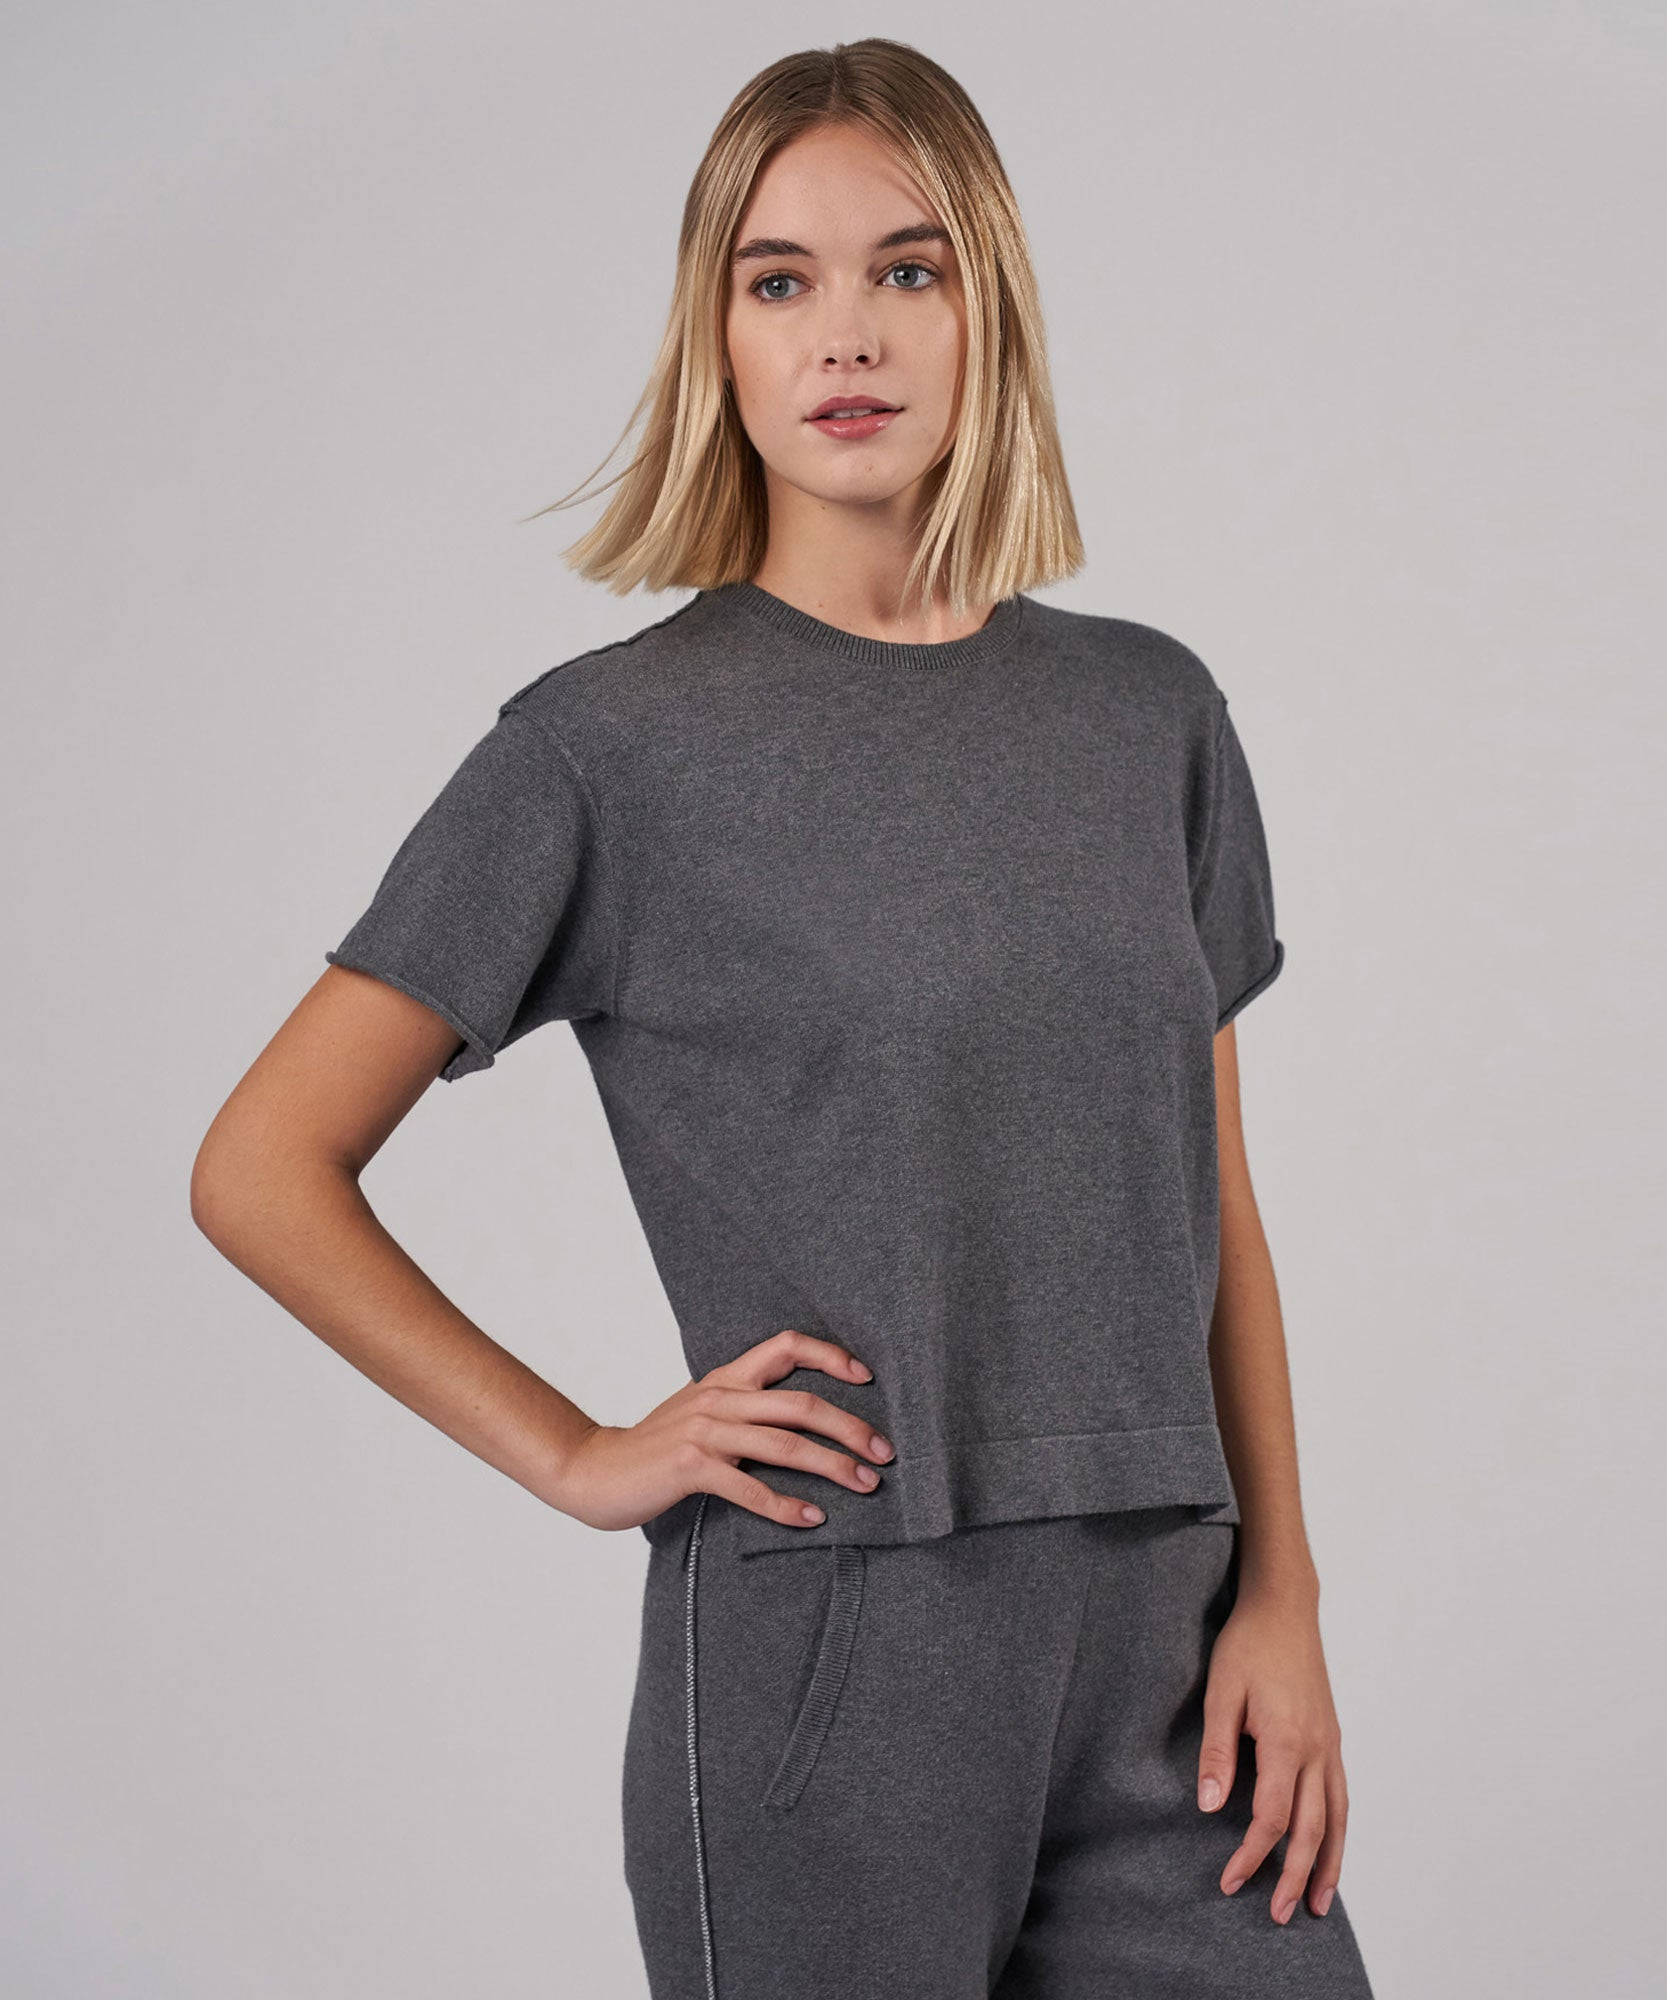 Heather Charcoal Cotton Cashmere Sweater Tee - Women's Short Sleeve Shirt by ATM Anthony Thomas Melillo